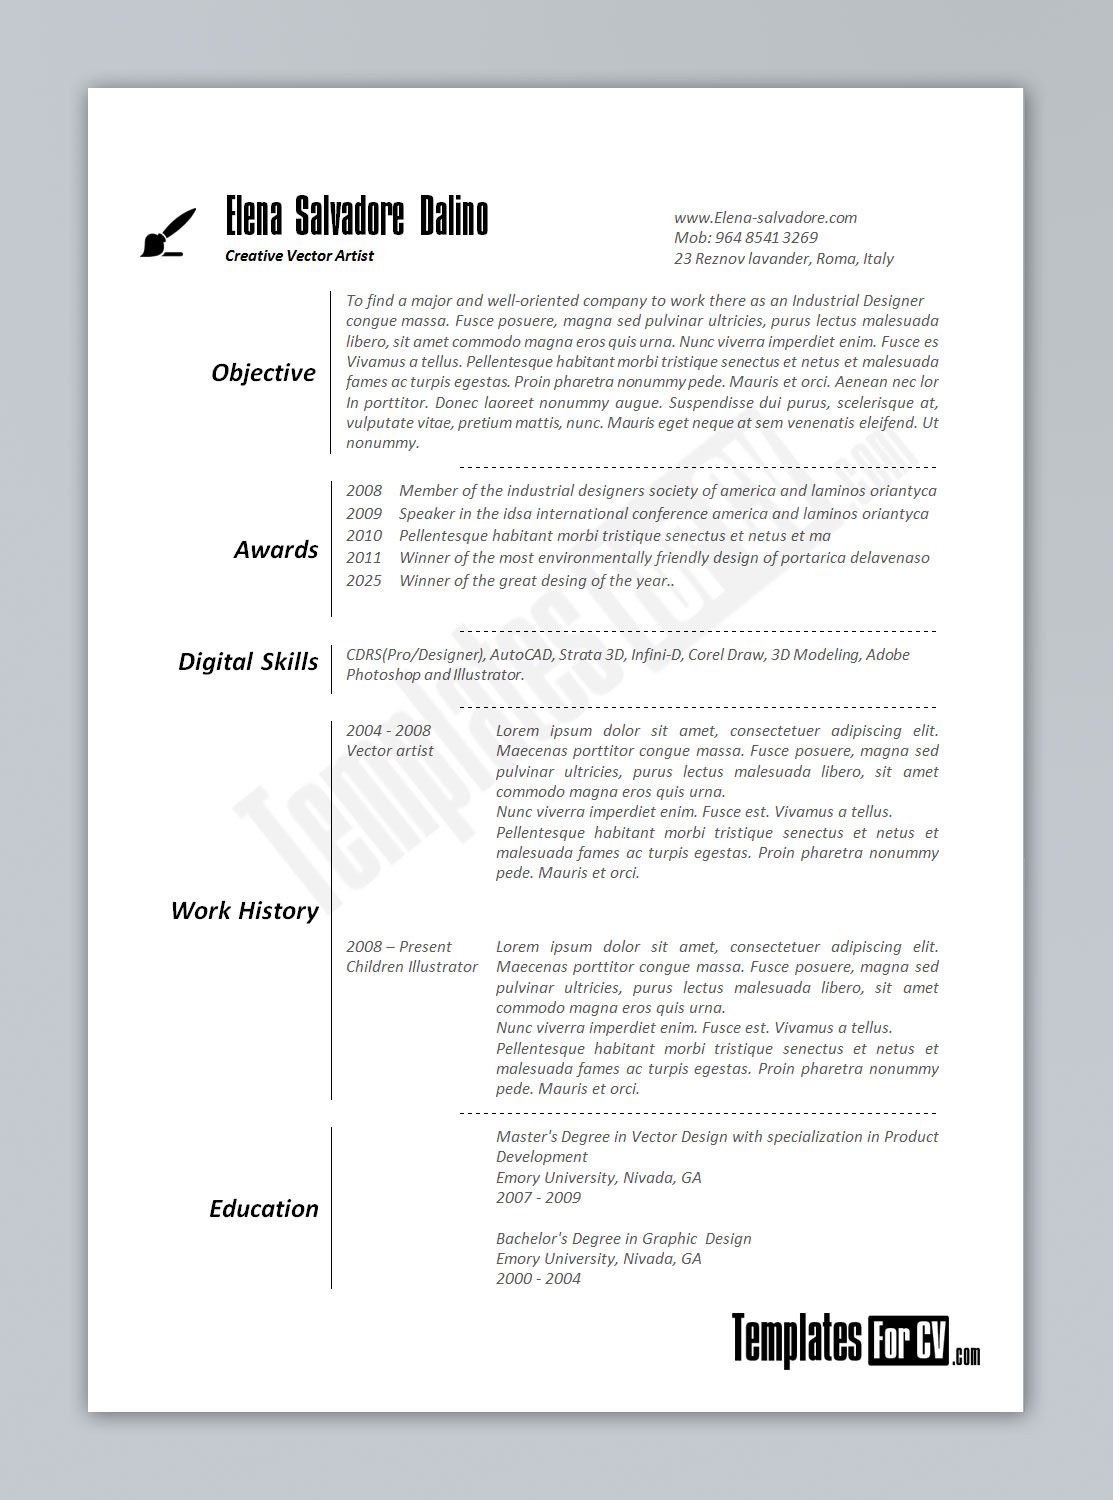 how to make a resume for job on microsoft word 2007 resume builder how to make a resume for job on microsoft word 2007 how to make a resume